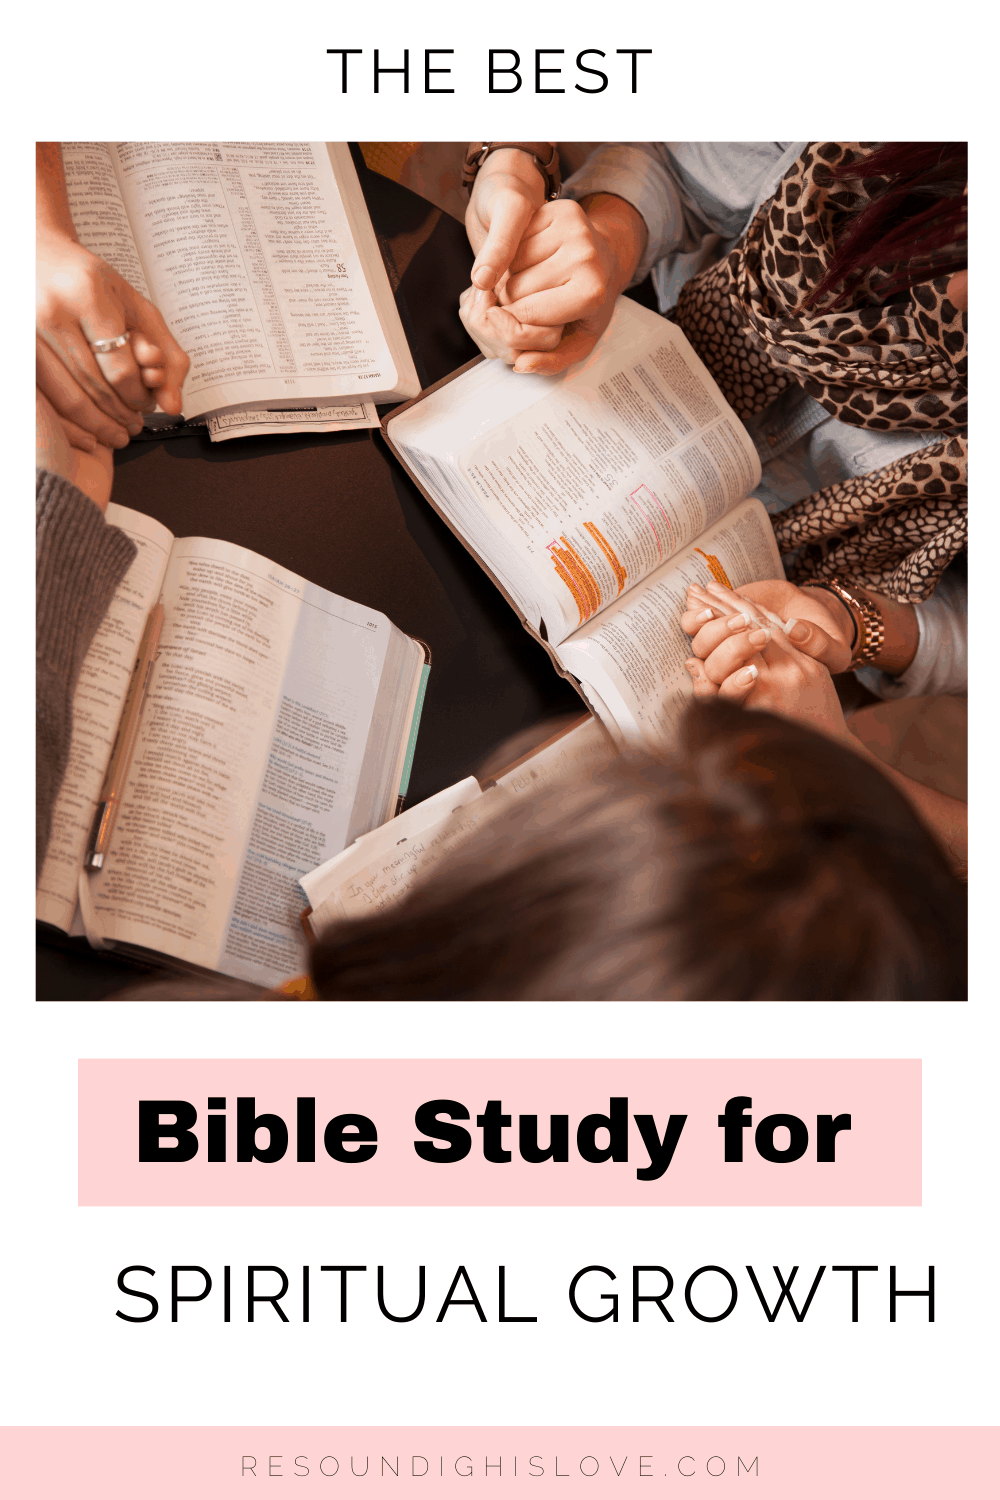 woman holding hands praying with opened bibles doing a bible study with text Bible Studies for Spiritual Growth